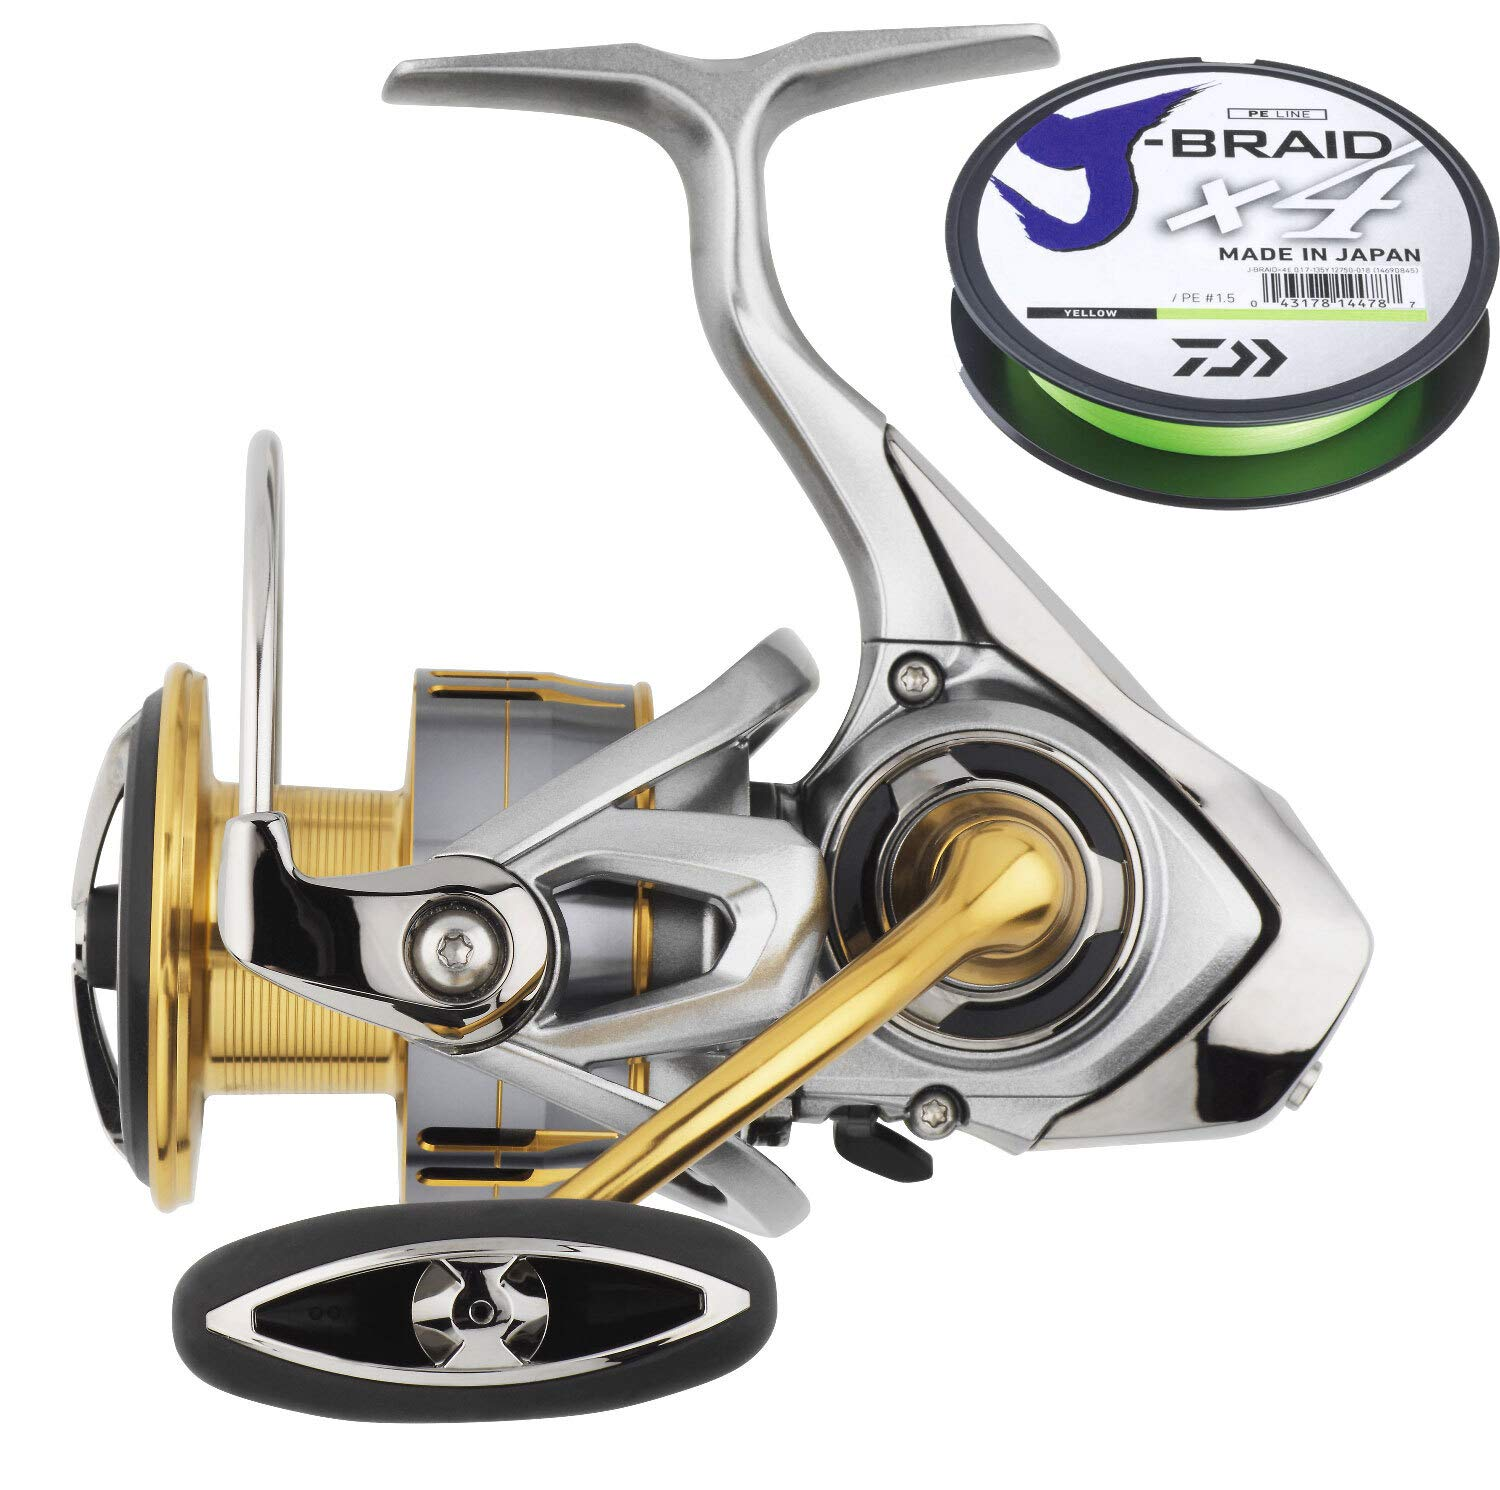 Gratis 0,17mm J-Braid Schnur Daiwa Freams 3000 LT Angelrolle